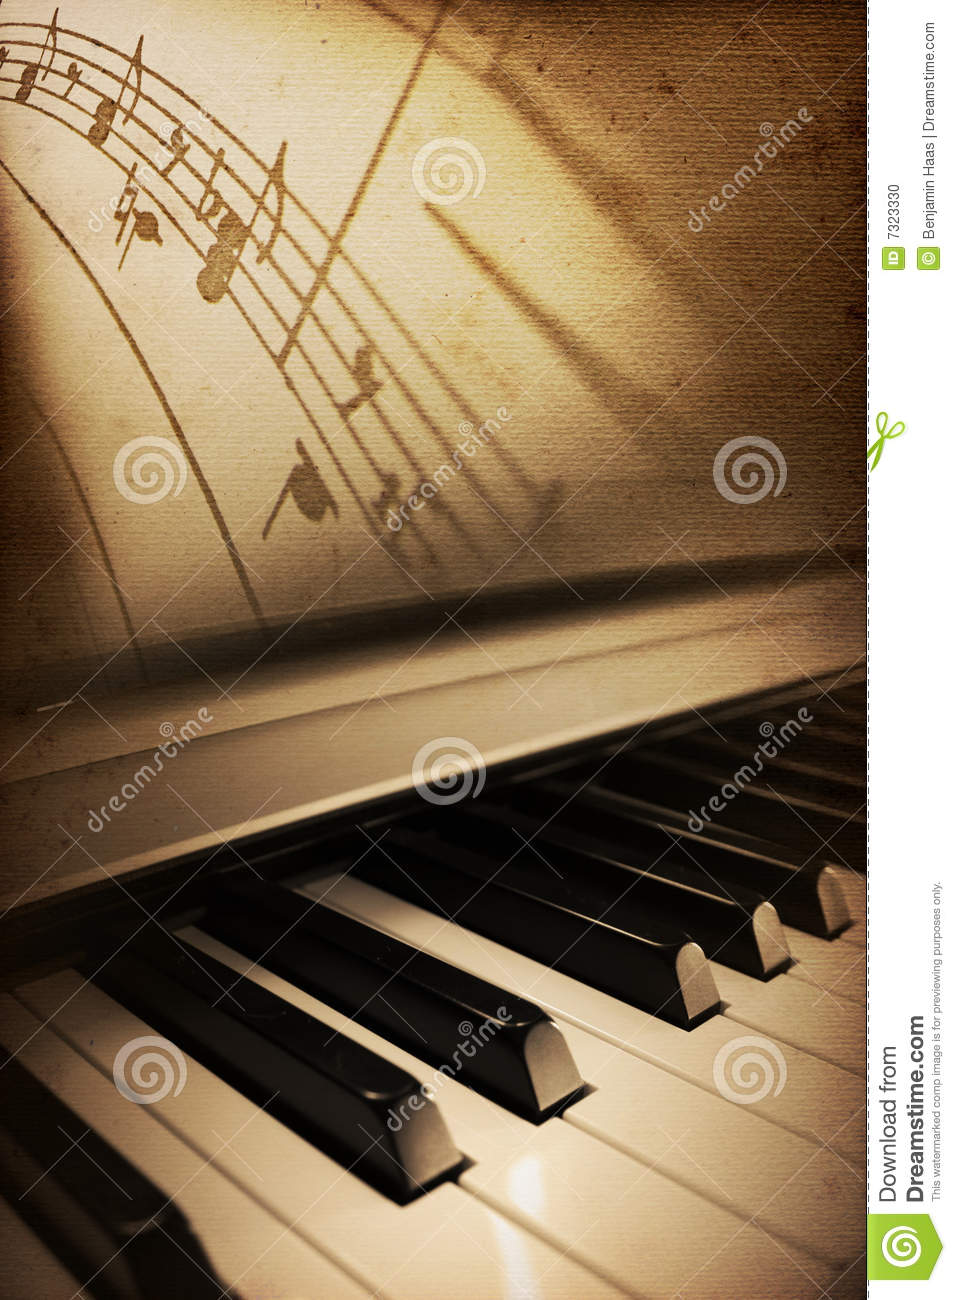 Old piano elegance